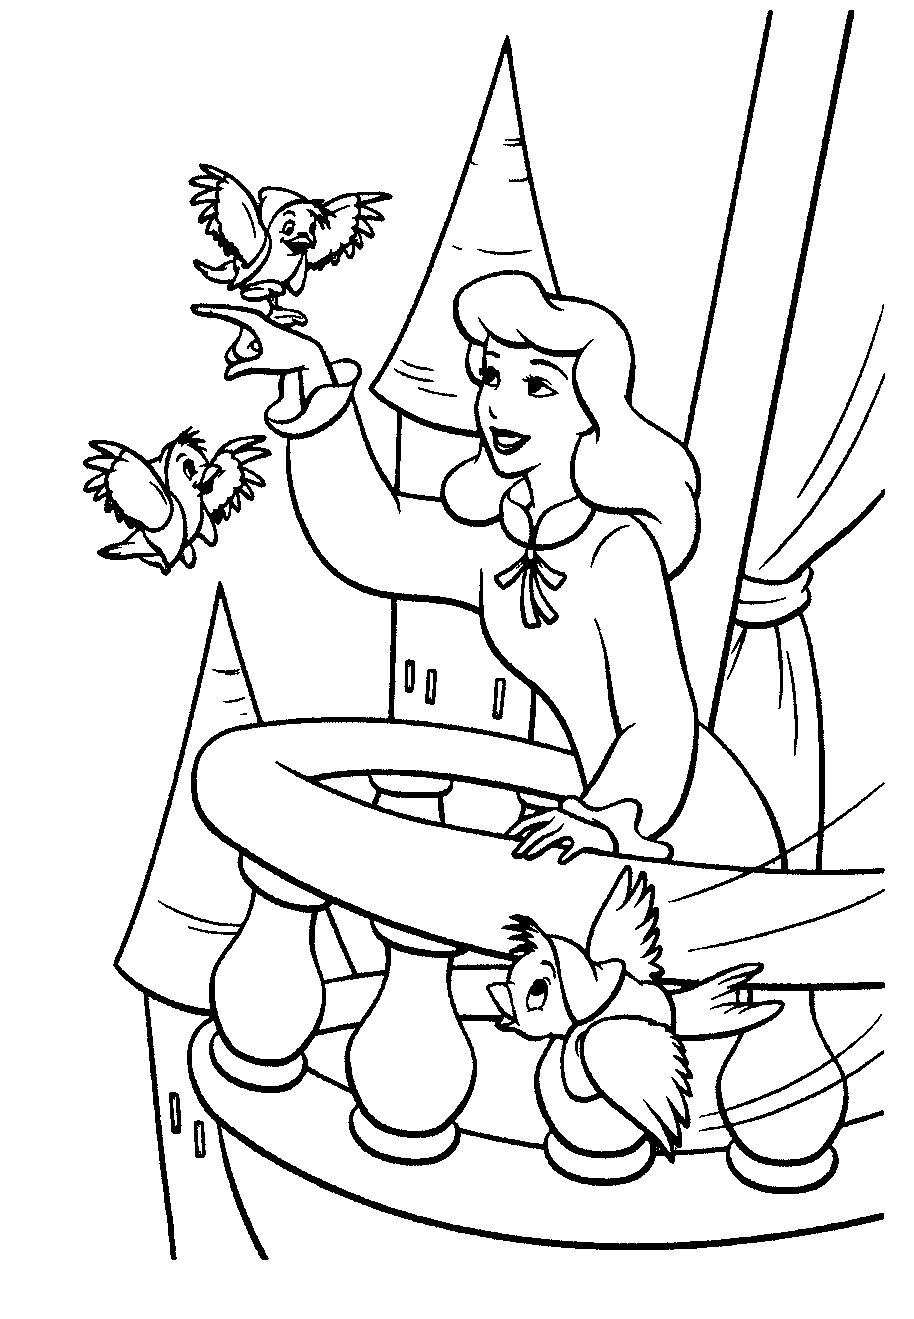 DISNEY COLORING PAGES: CINDERELLA FREE COLORING SHEET